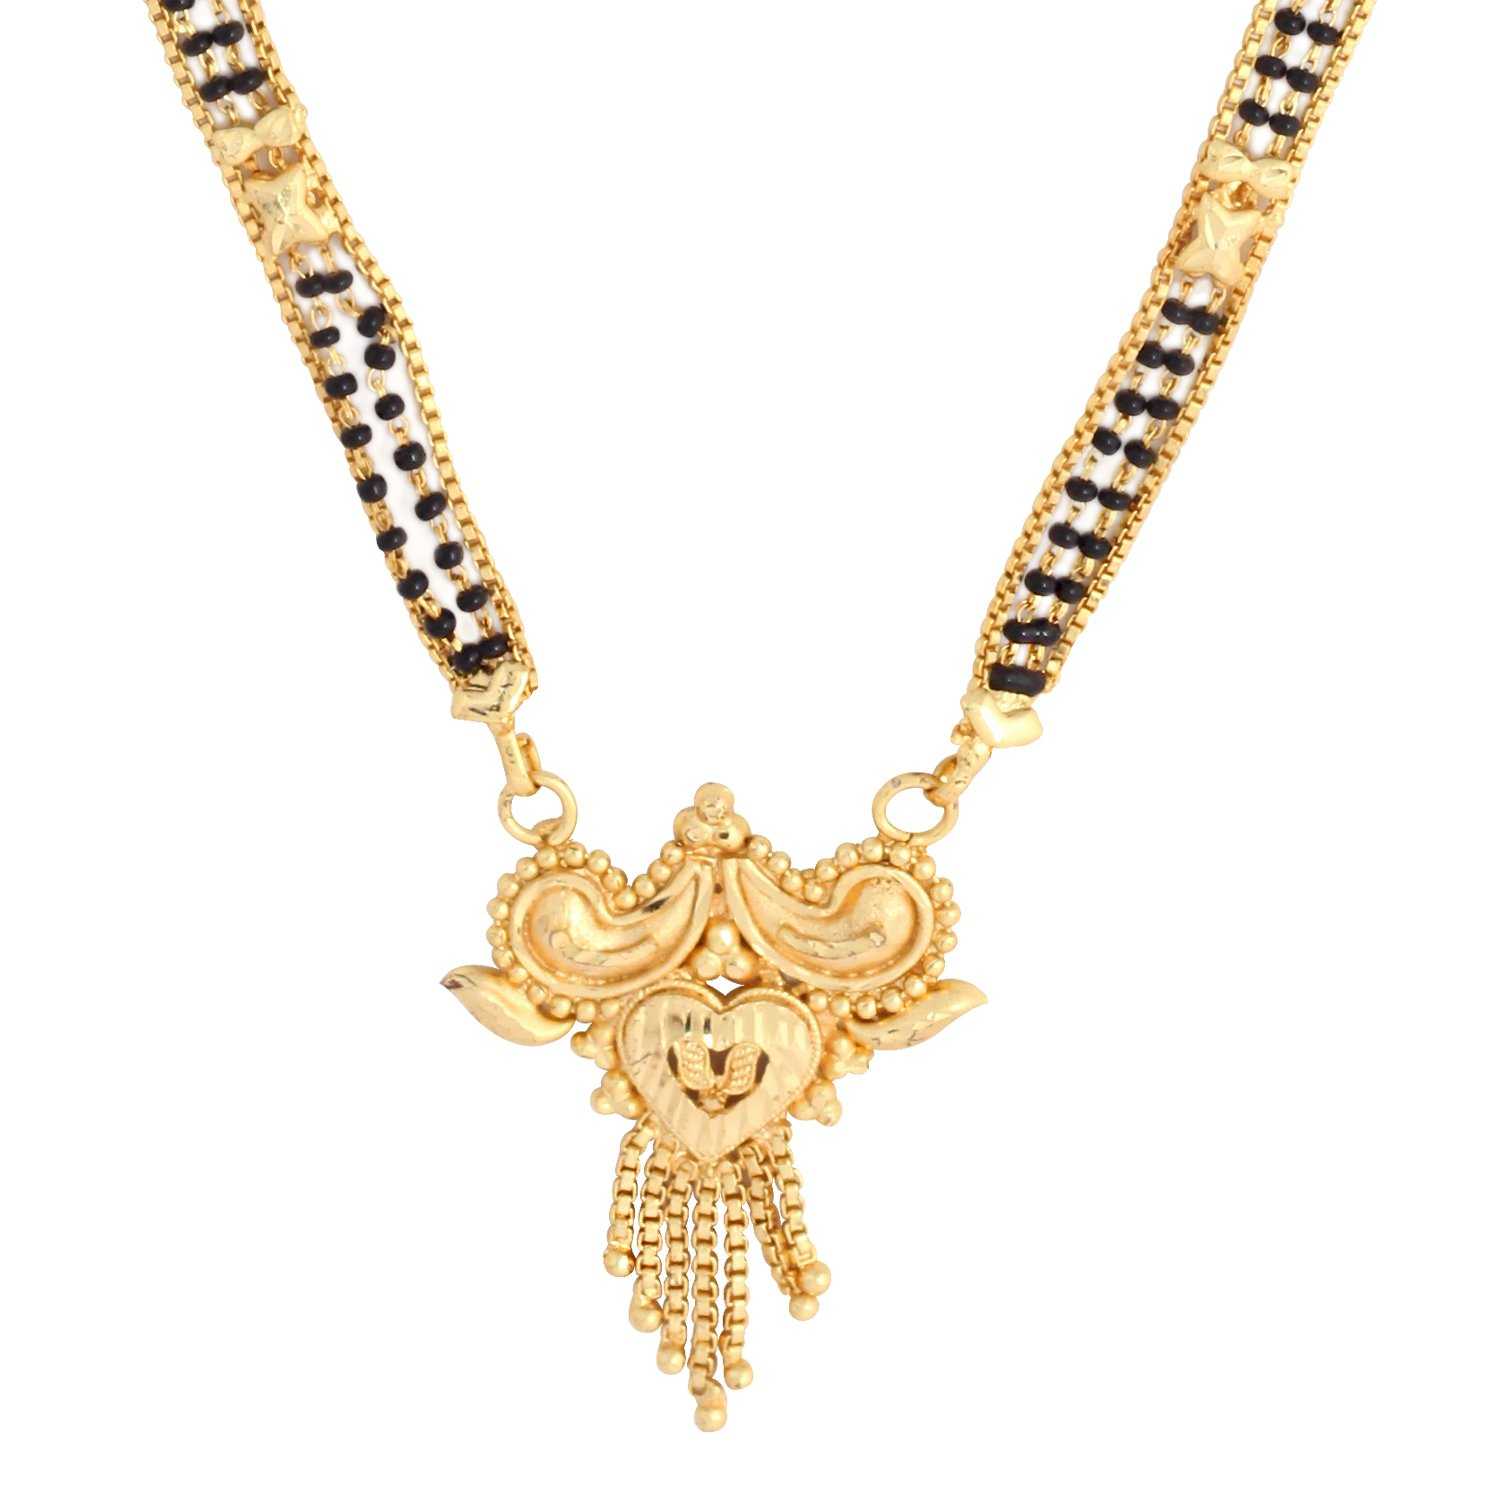 Golden & Black 23.5K Gold Plated 4 Line 472Ms 30 Inch Mangalsutra Necklace For Women